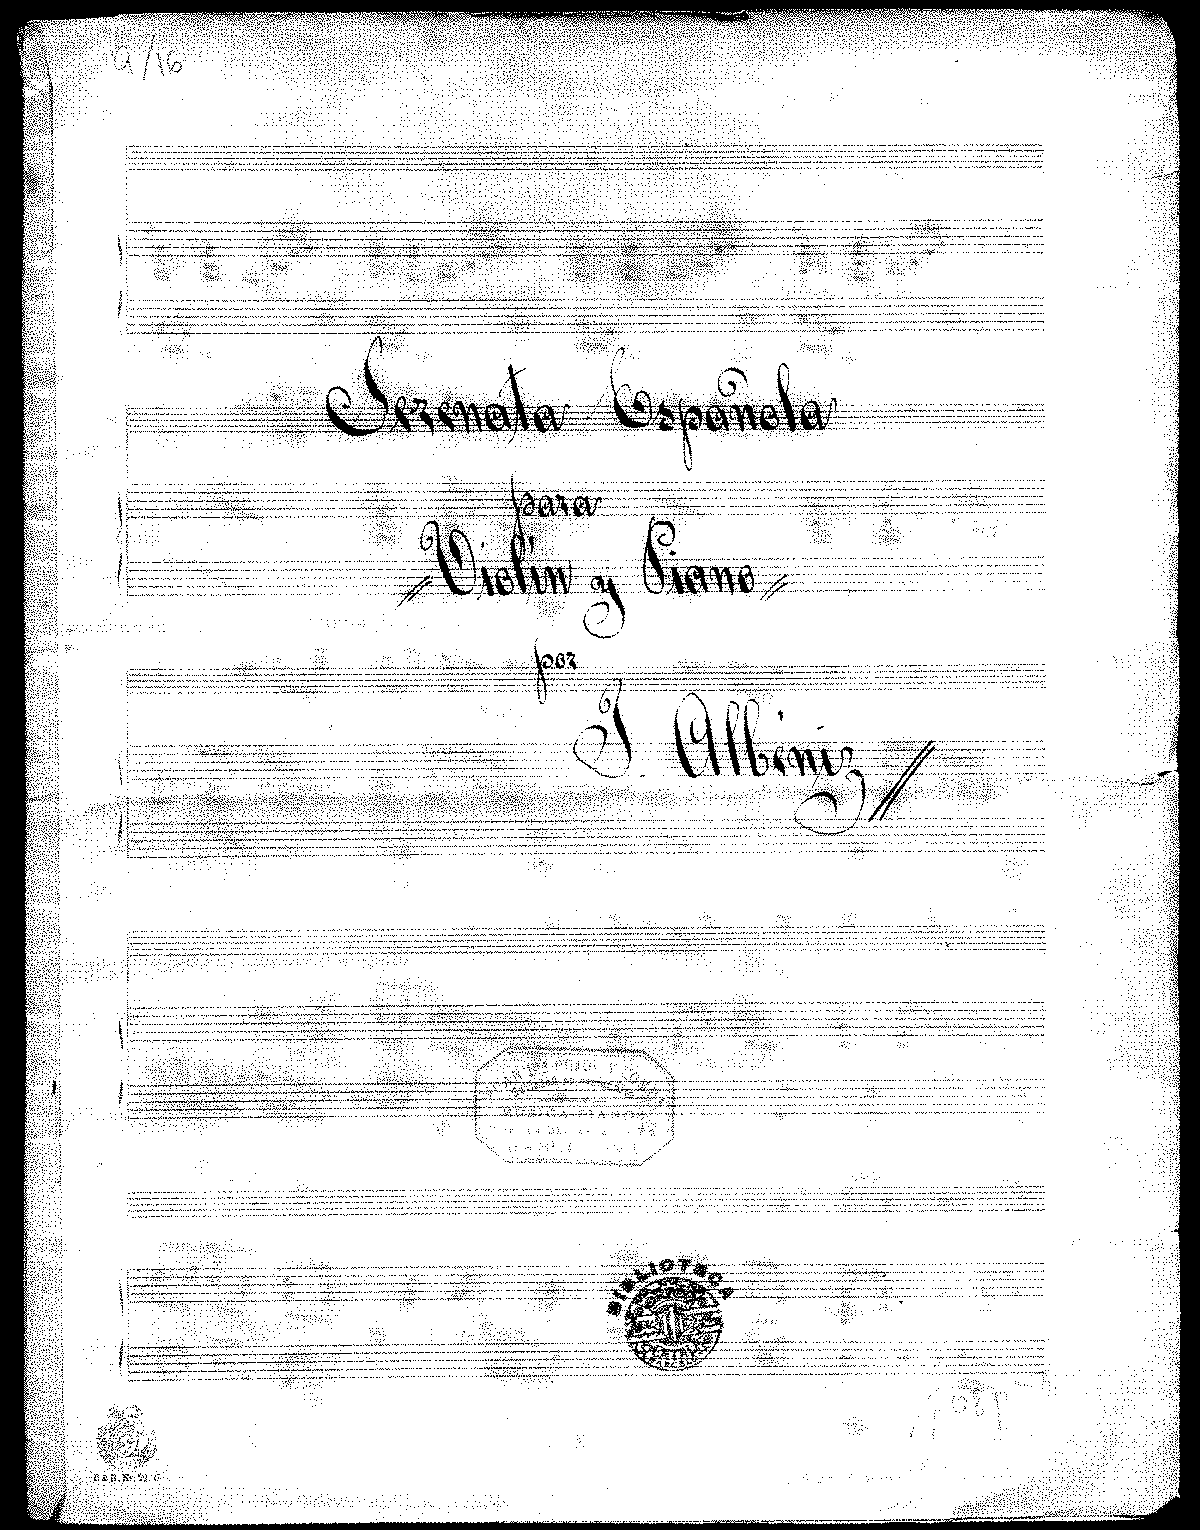 PMLP33993-Albiniz - Serenata Espanola for Violin and Piano manusicript.pdf